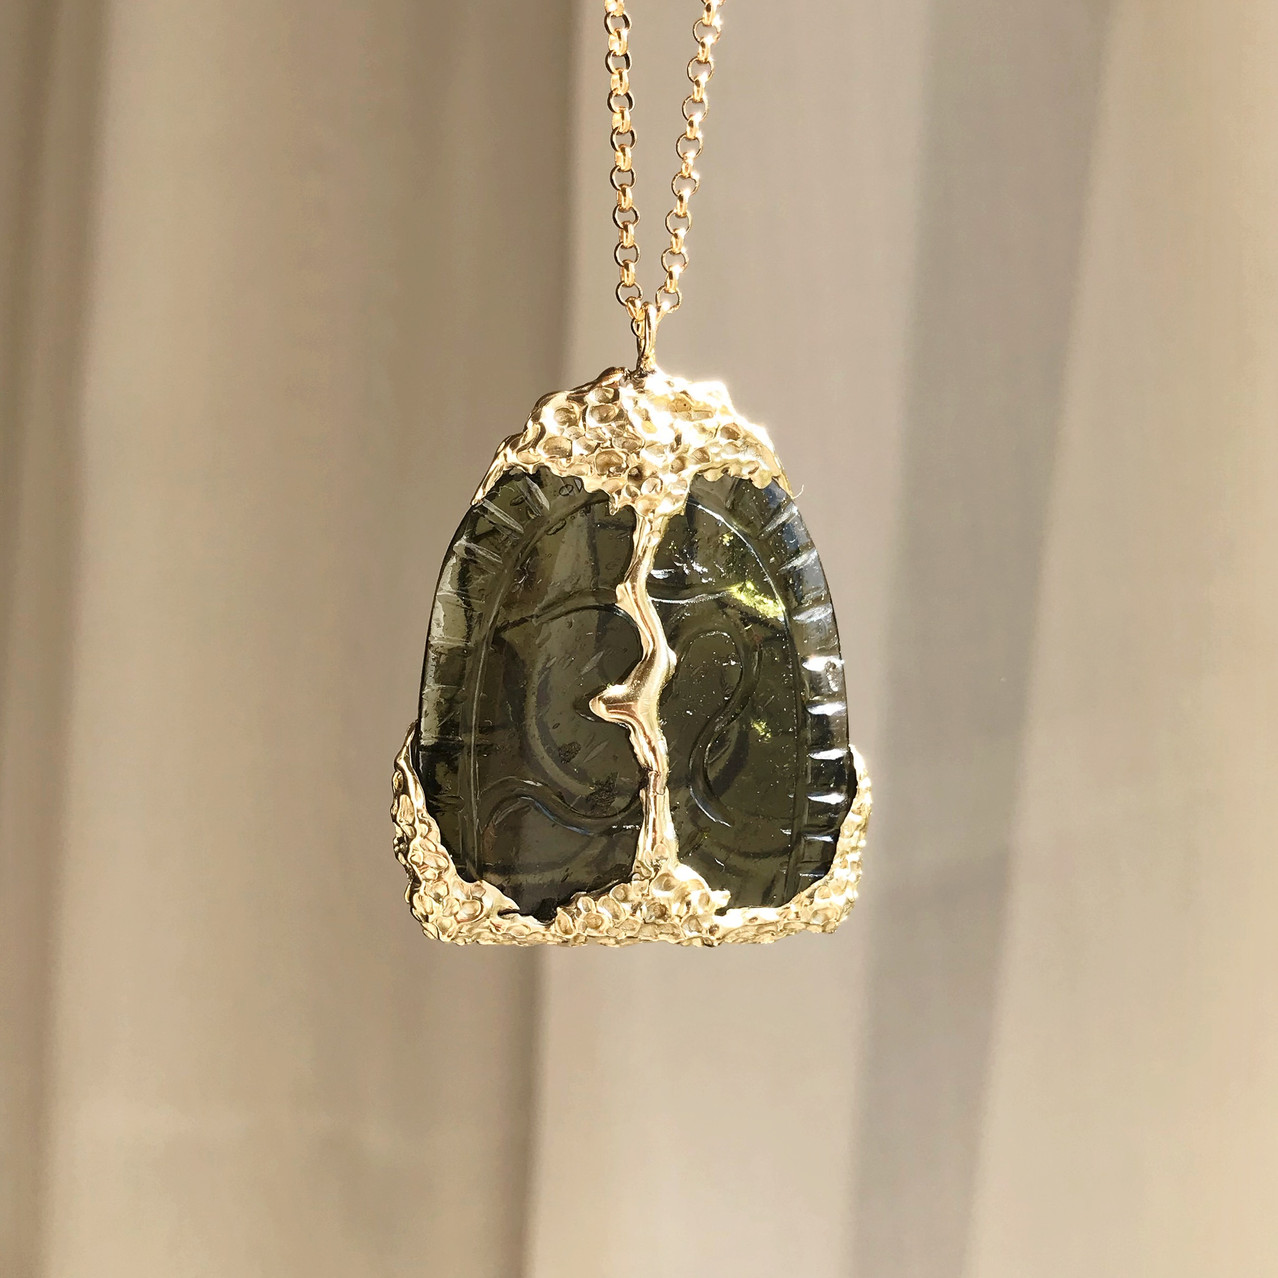 IMG_7955. Moldavite by Courtney Bensik JewelryJPG